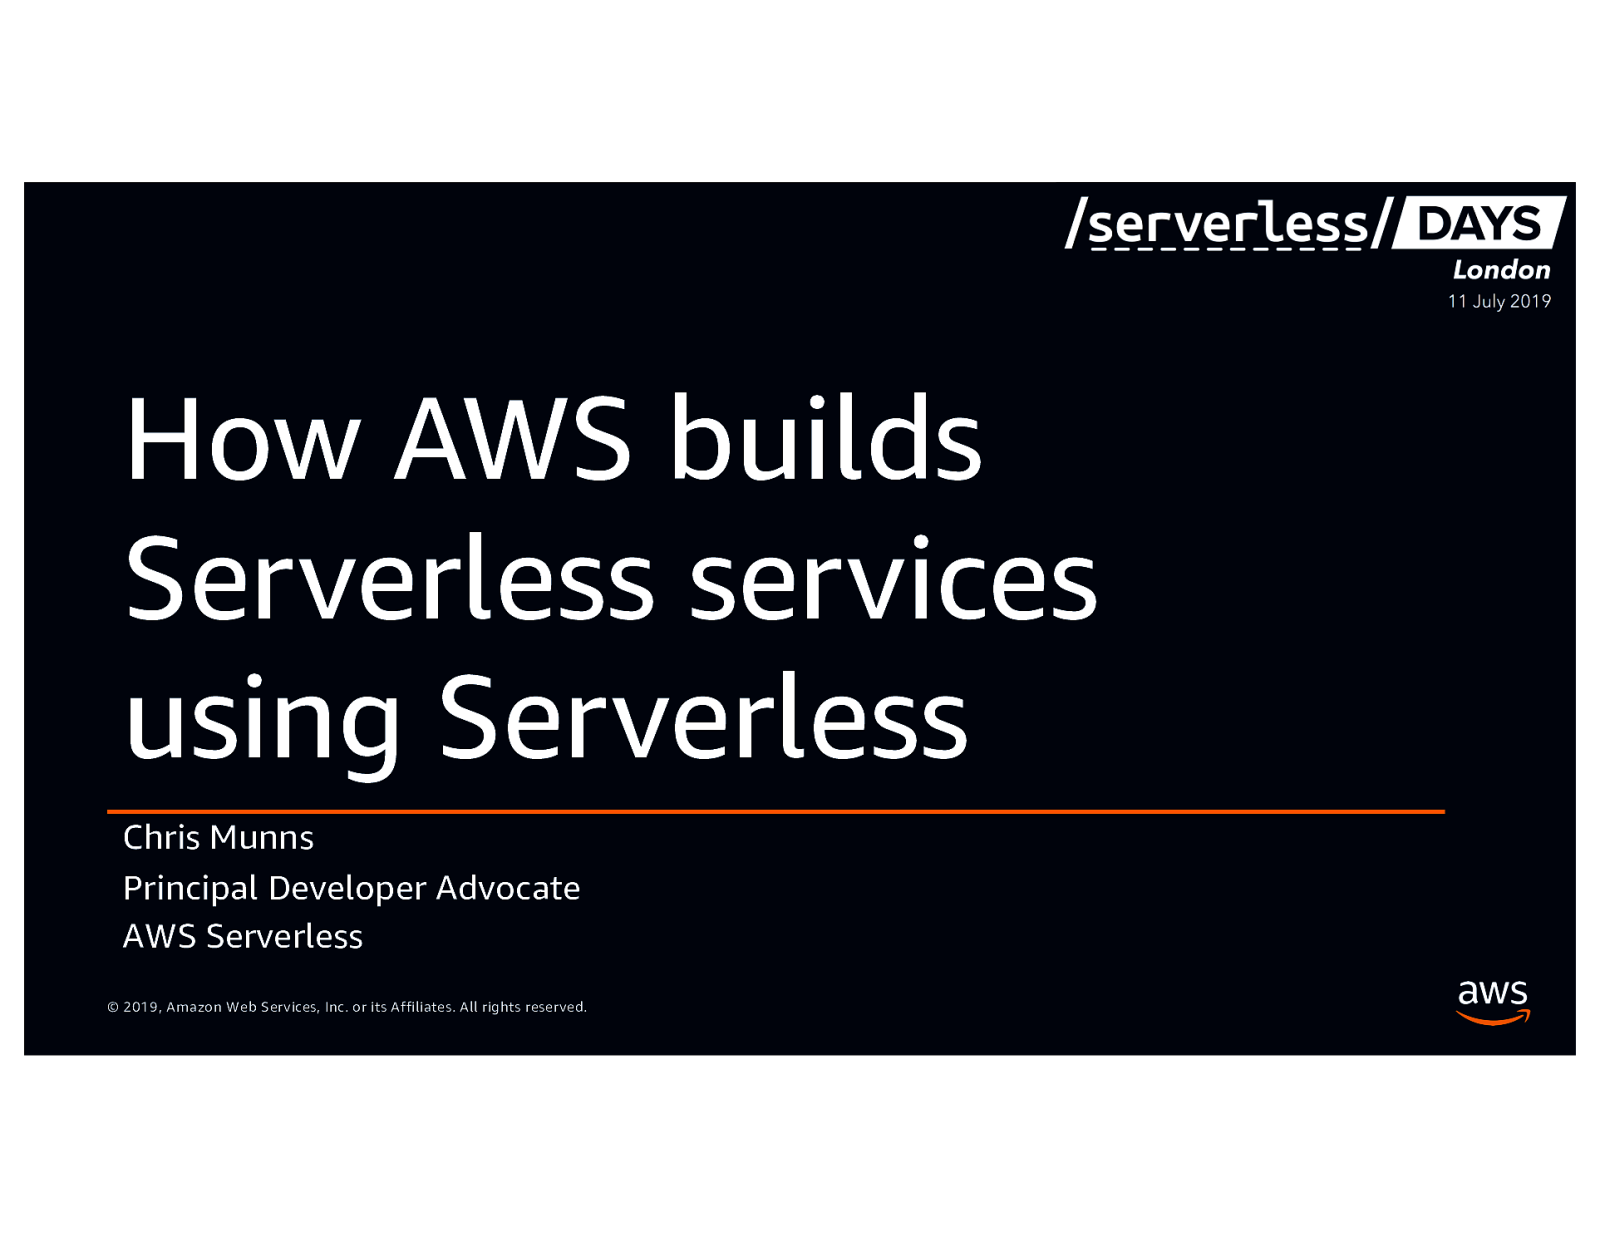 How AWS Builds Serverless Services Using Serverless - Introducing Amazon EventBridge